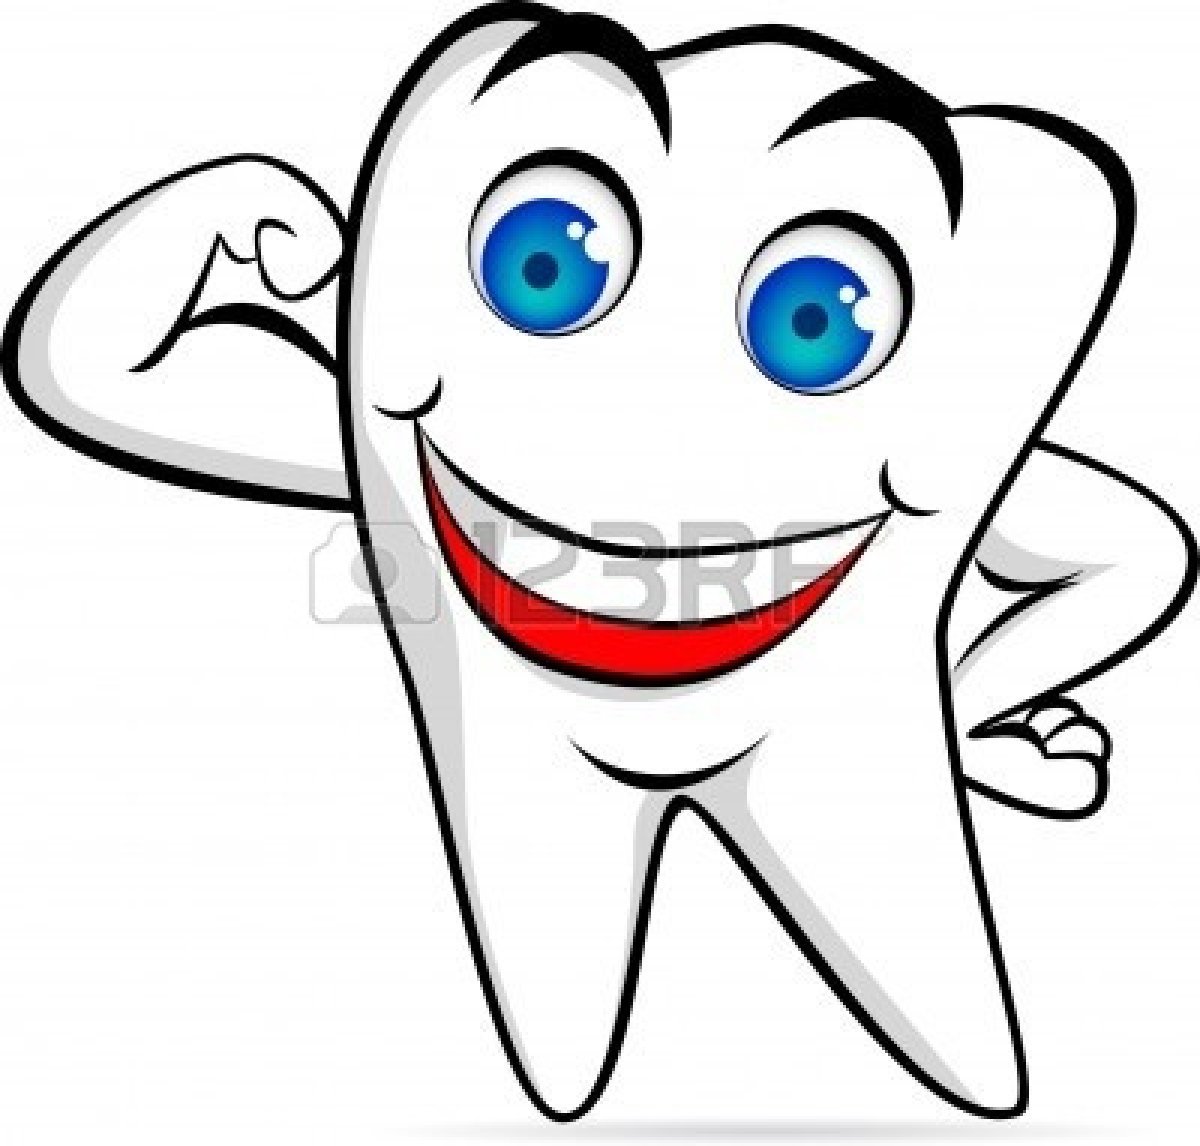 Teeth clipart strong tooth Clipart Happy Images Art Free